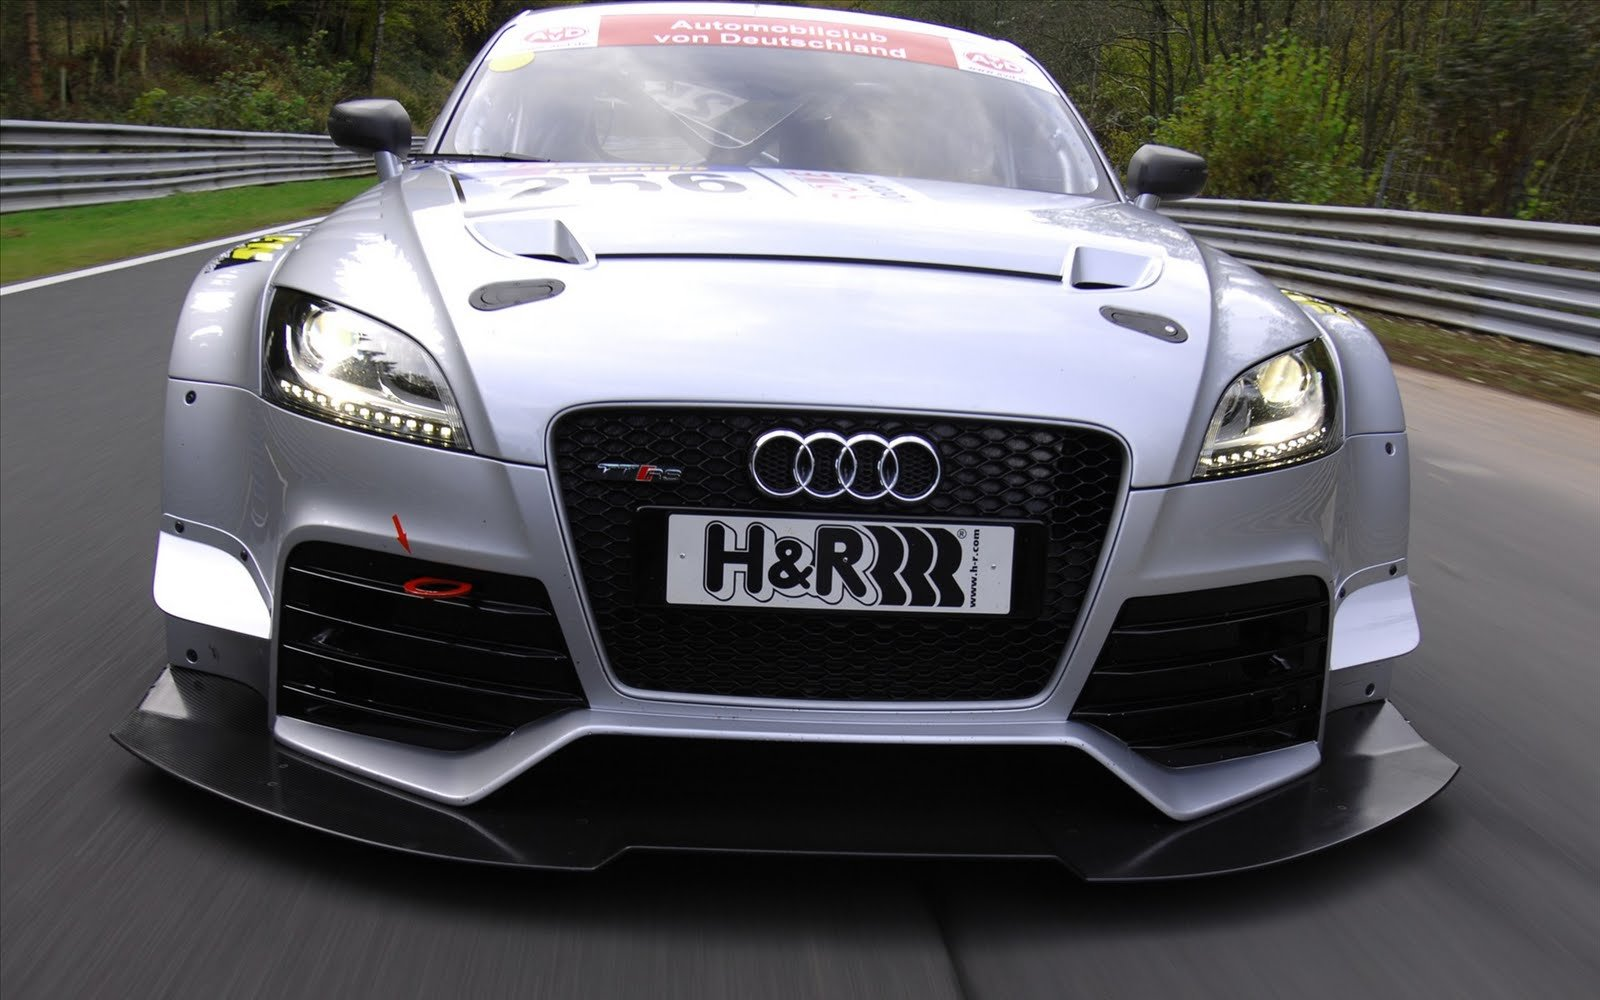 Latest Audi Tt Rs 2012 Review And Spec Car Wallpaper Car Pictures Free Download